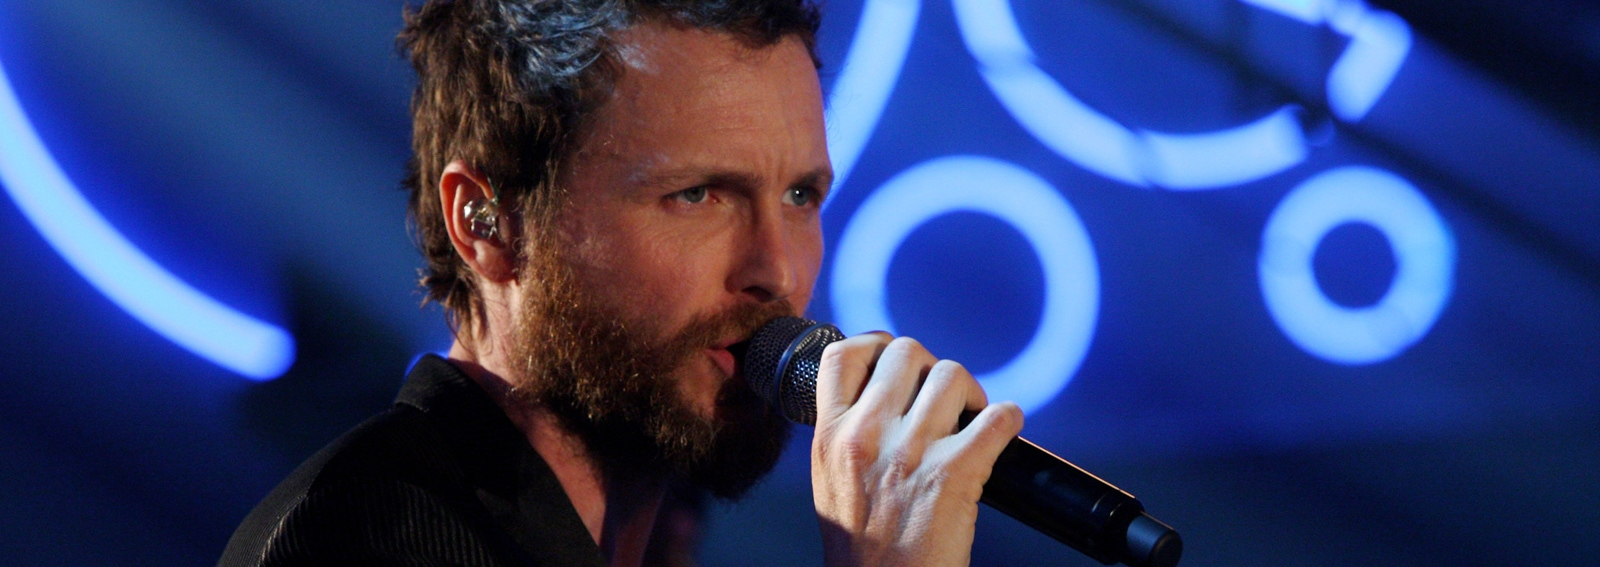 Jovanotti Performs At Scalo 76 Music TV Show